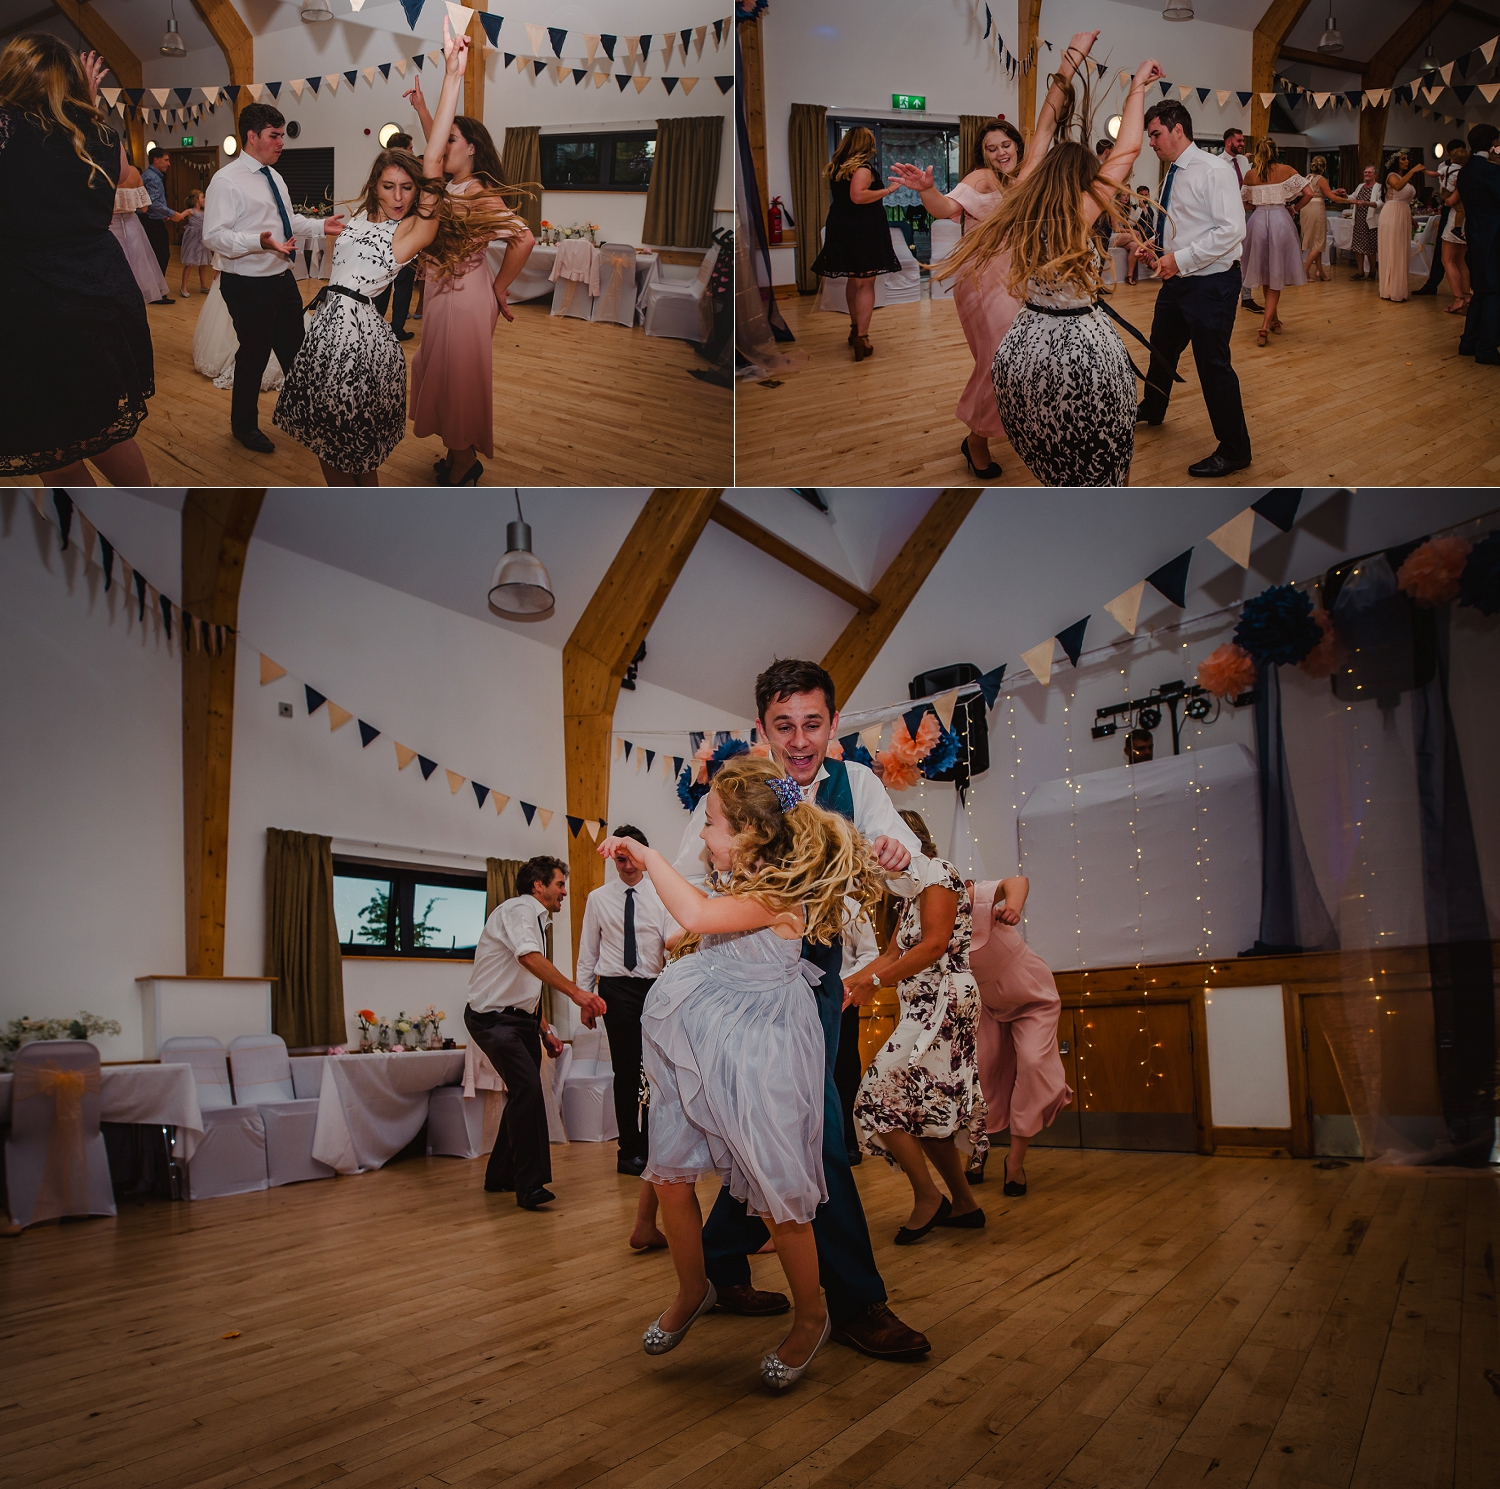 Jam_Jar_Wedding_Rock_Village_Hall_0157.jpg